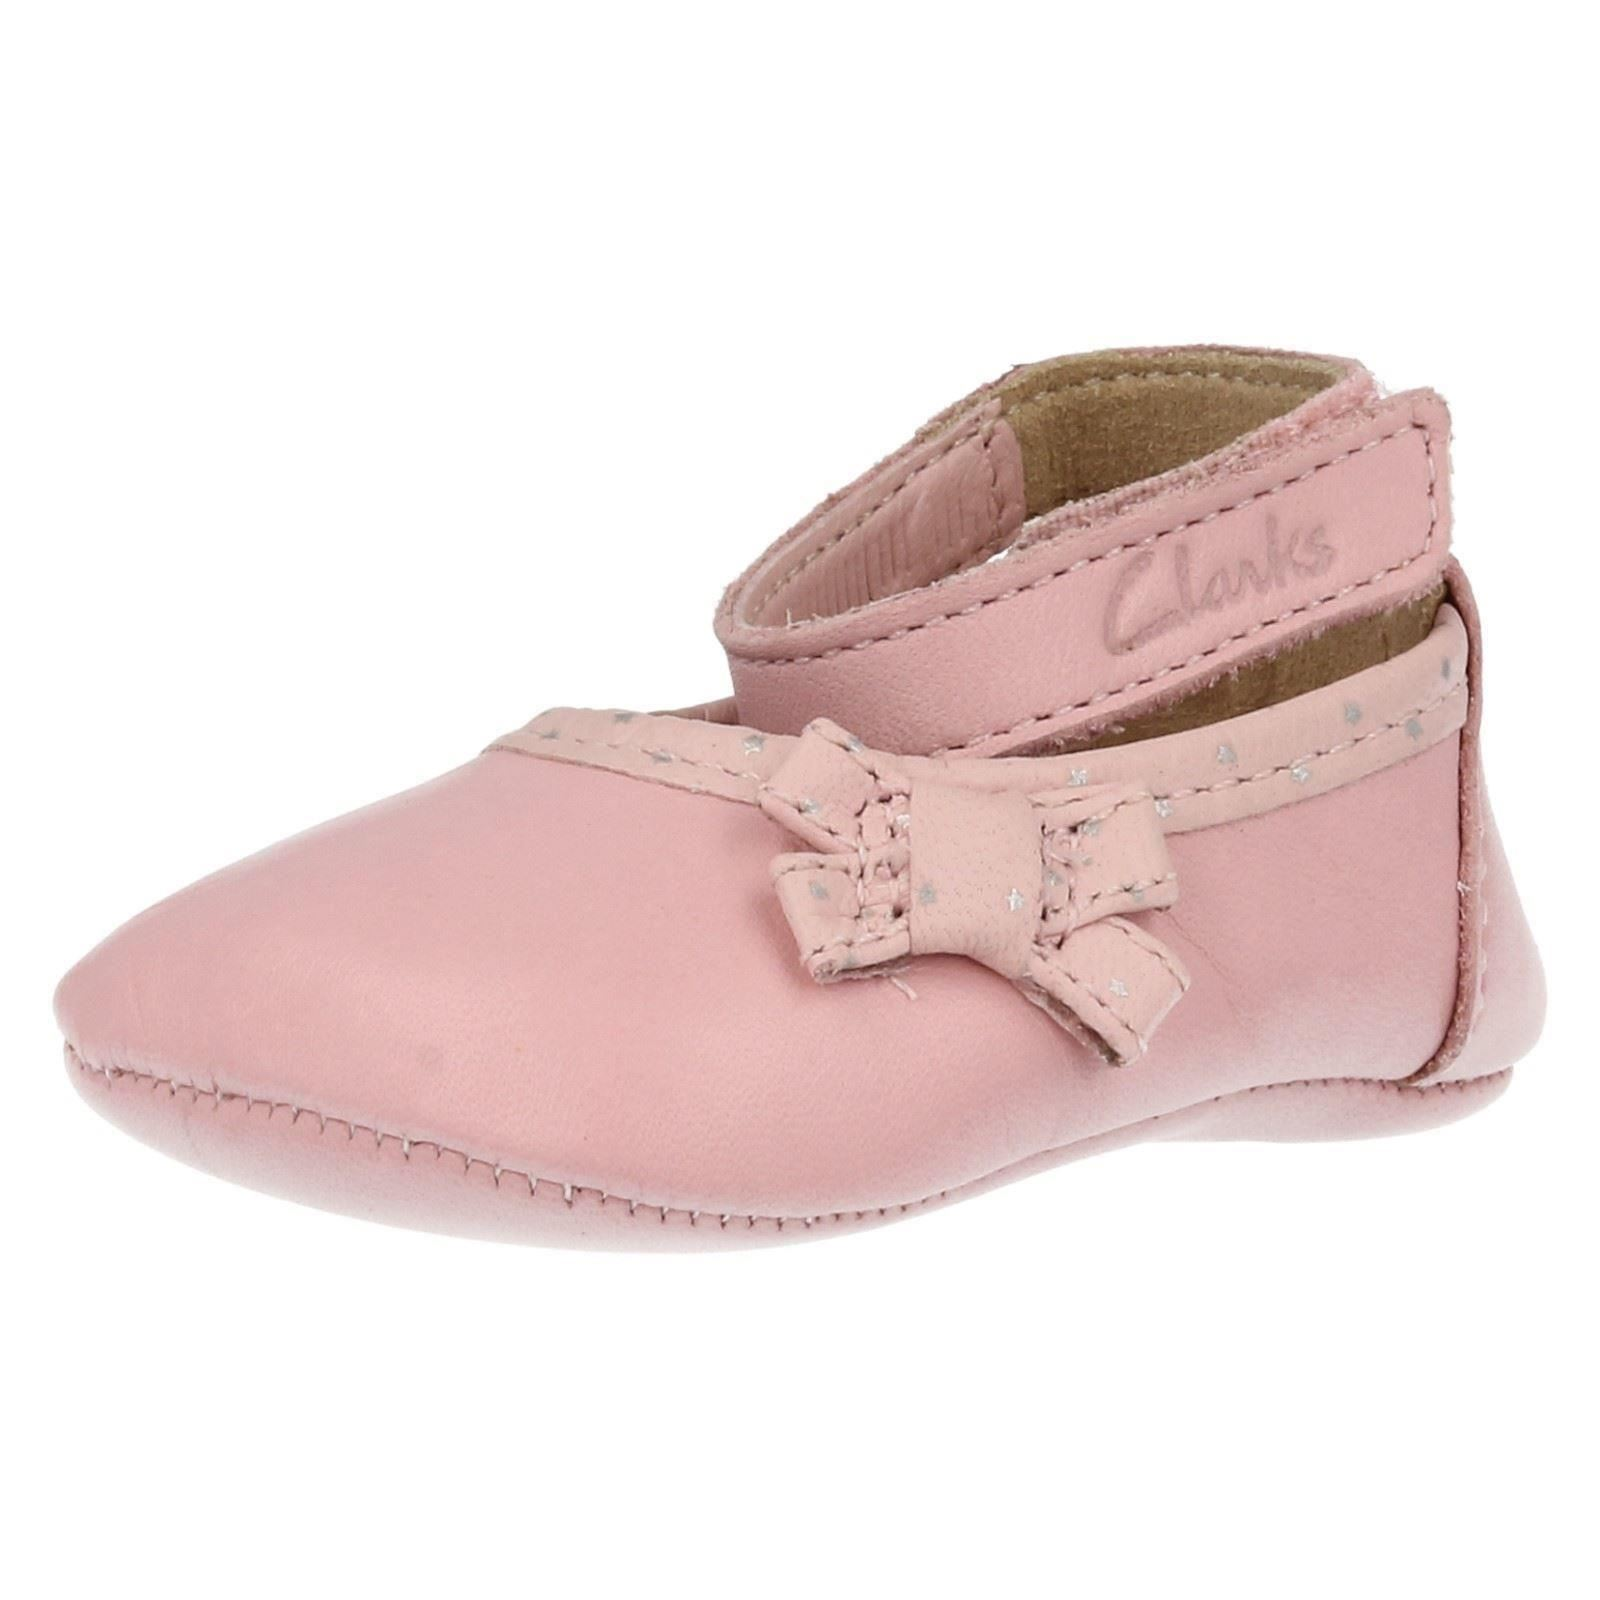 Old fashioned baby shoes 28